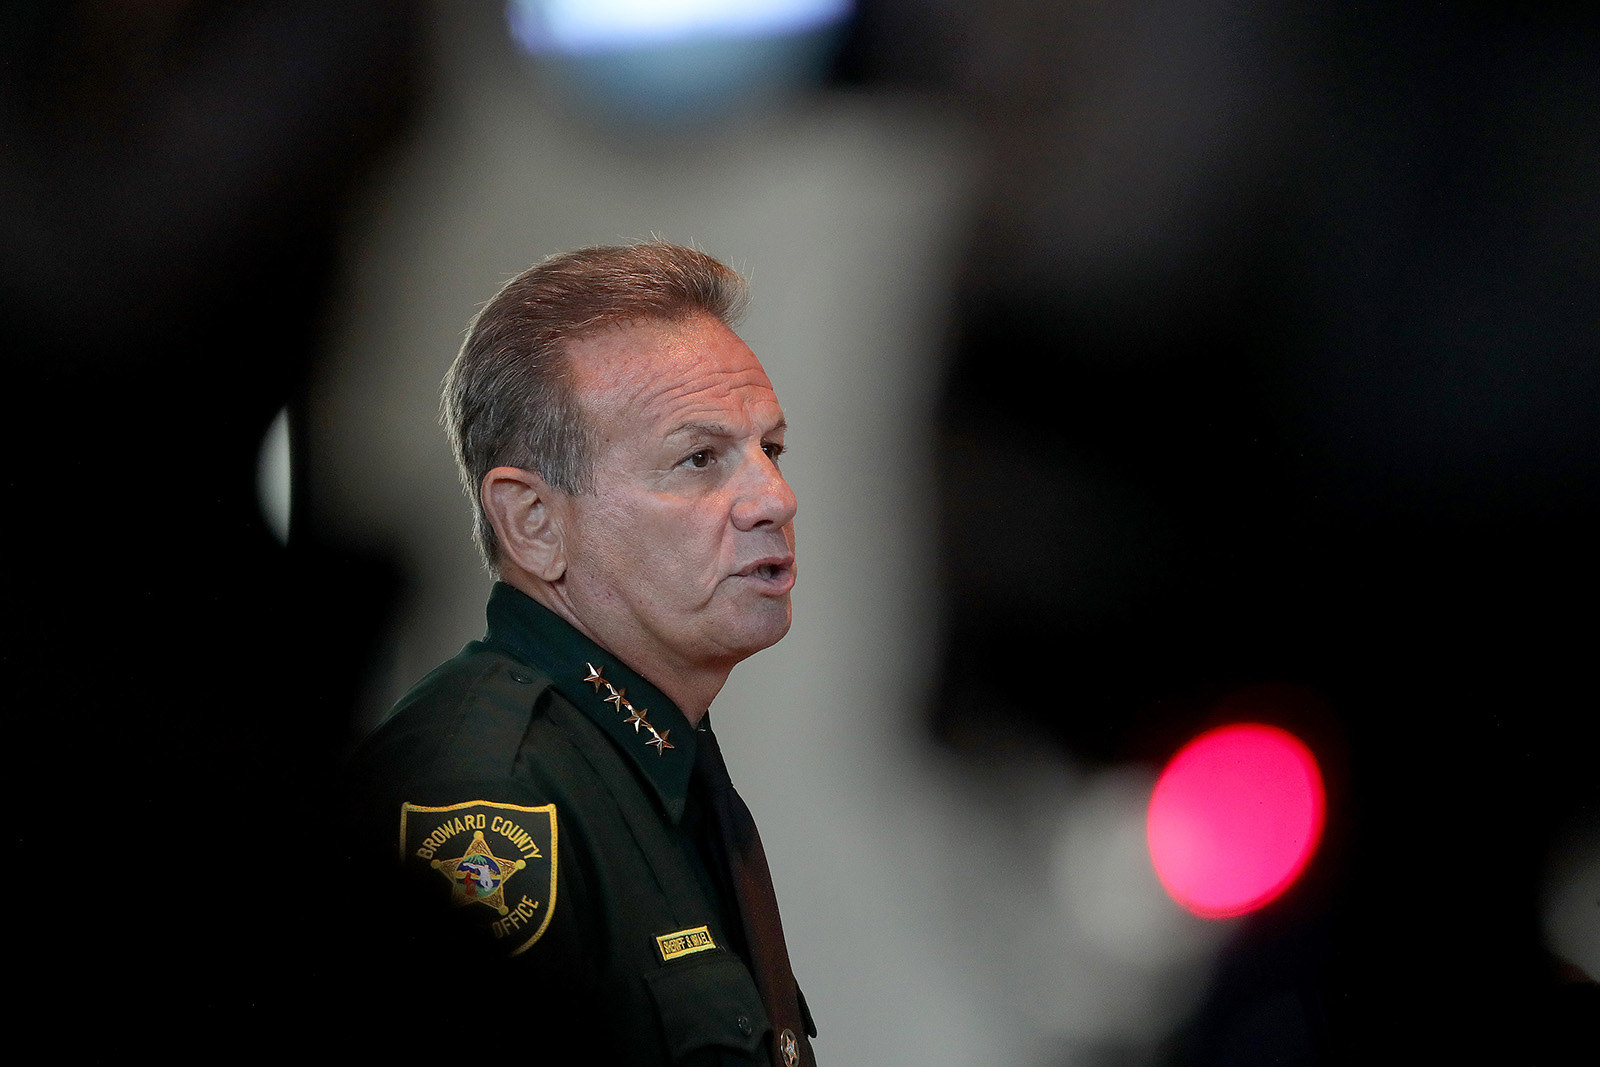 Sheriff Scott Israel speaks at the Marjory Stoneman Douglas High School Public Safety Commission meeting on Nov. 15, 2018.